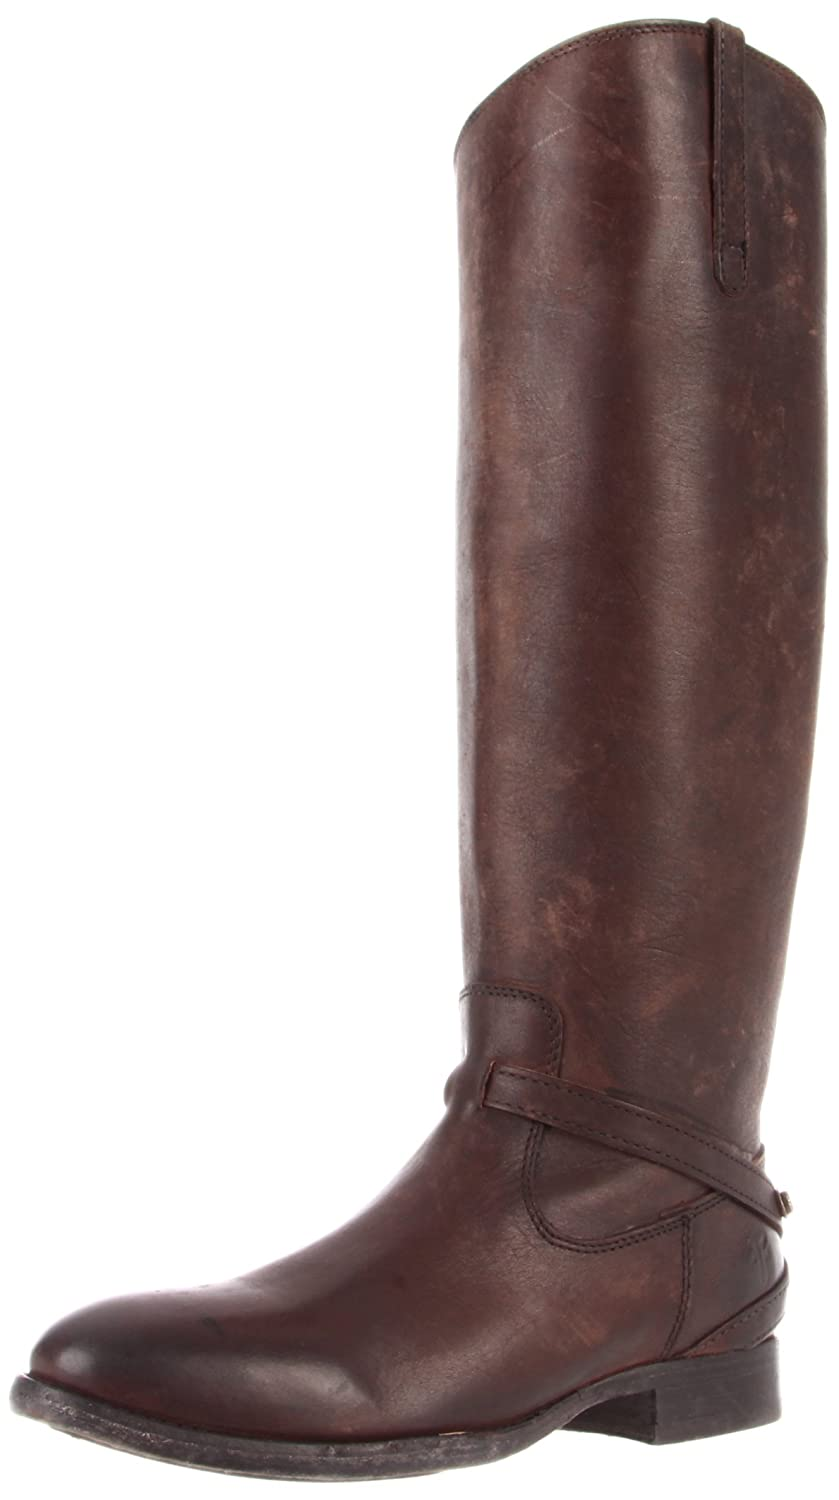 FRYE Women's Lindsay Plate Knee-High Boot B006NYP47G 10 B(M) US|Dark Brown Stone Wash Leather-76975